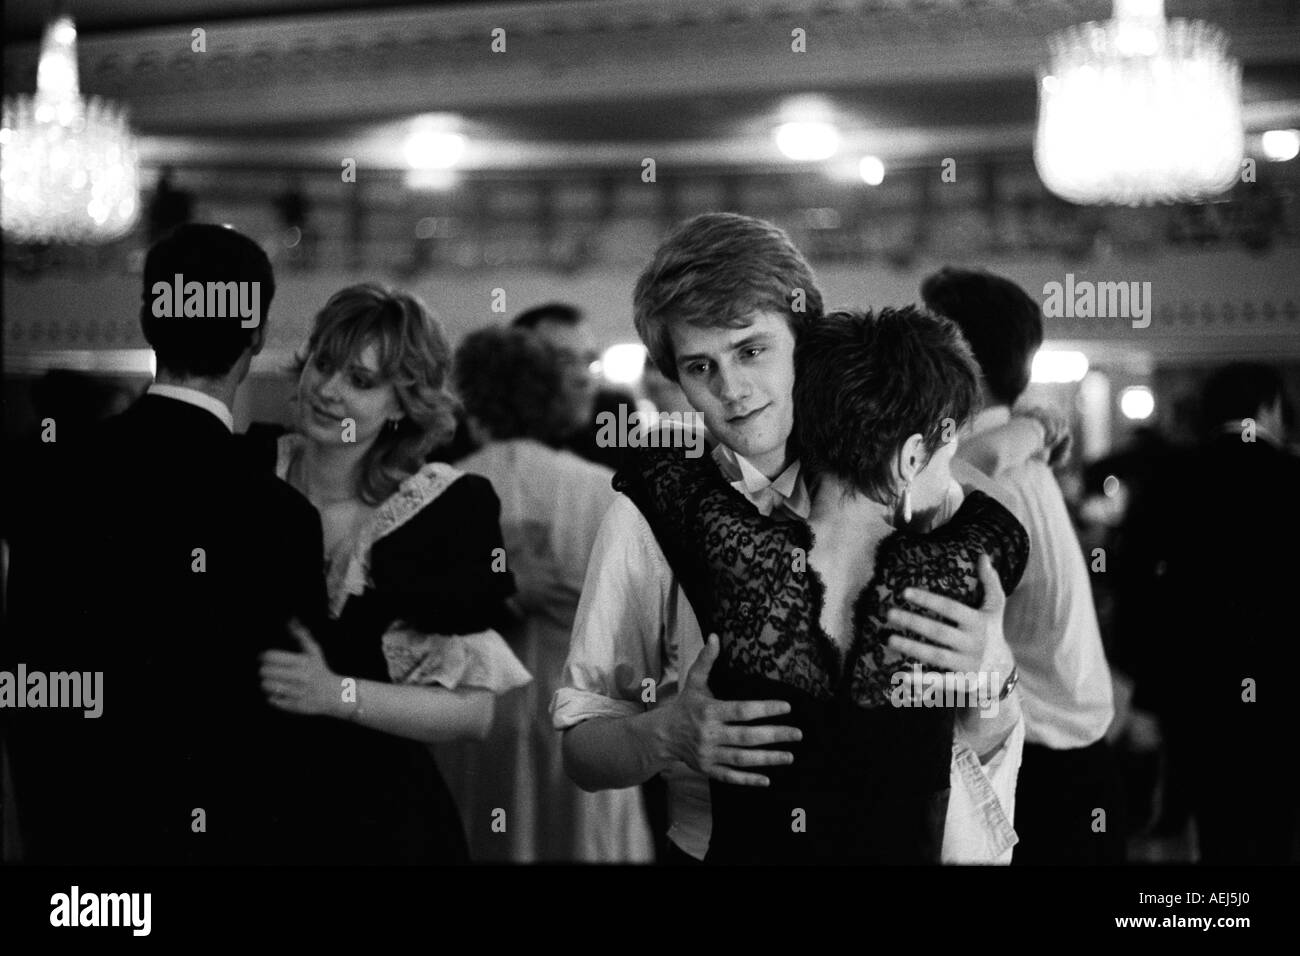 Bal de la Rose Grosvenor House Hotel, Park Lane, Londres Angleterre 1982. HOMER SYKES Photo Stock